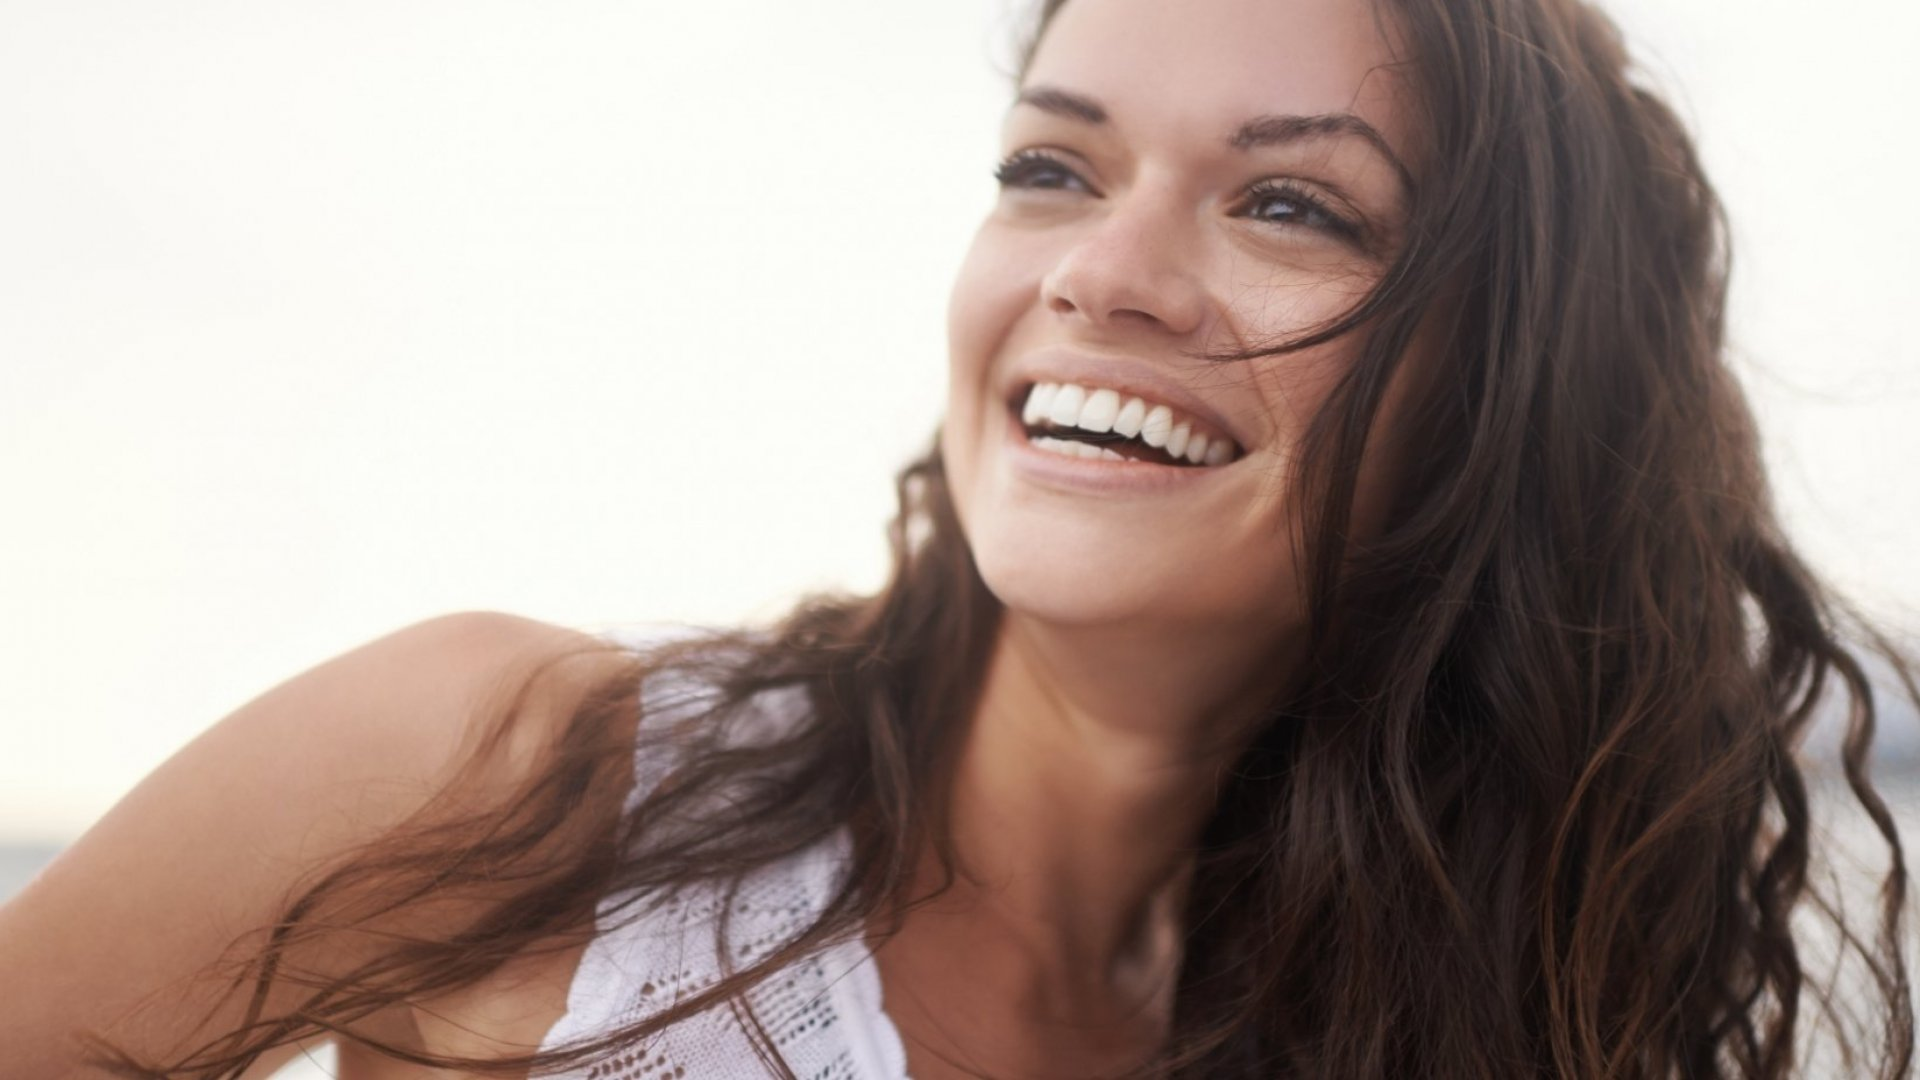 Smile! Your Ability to Overcome Life's Obstacles May Depend On It